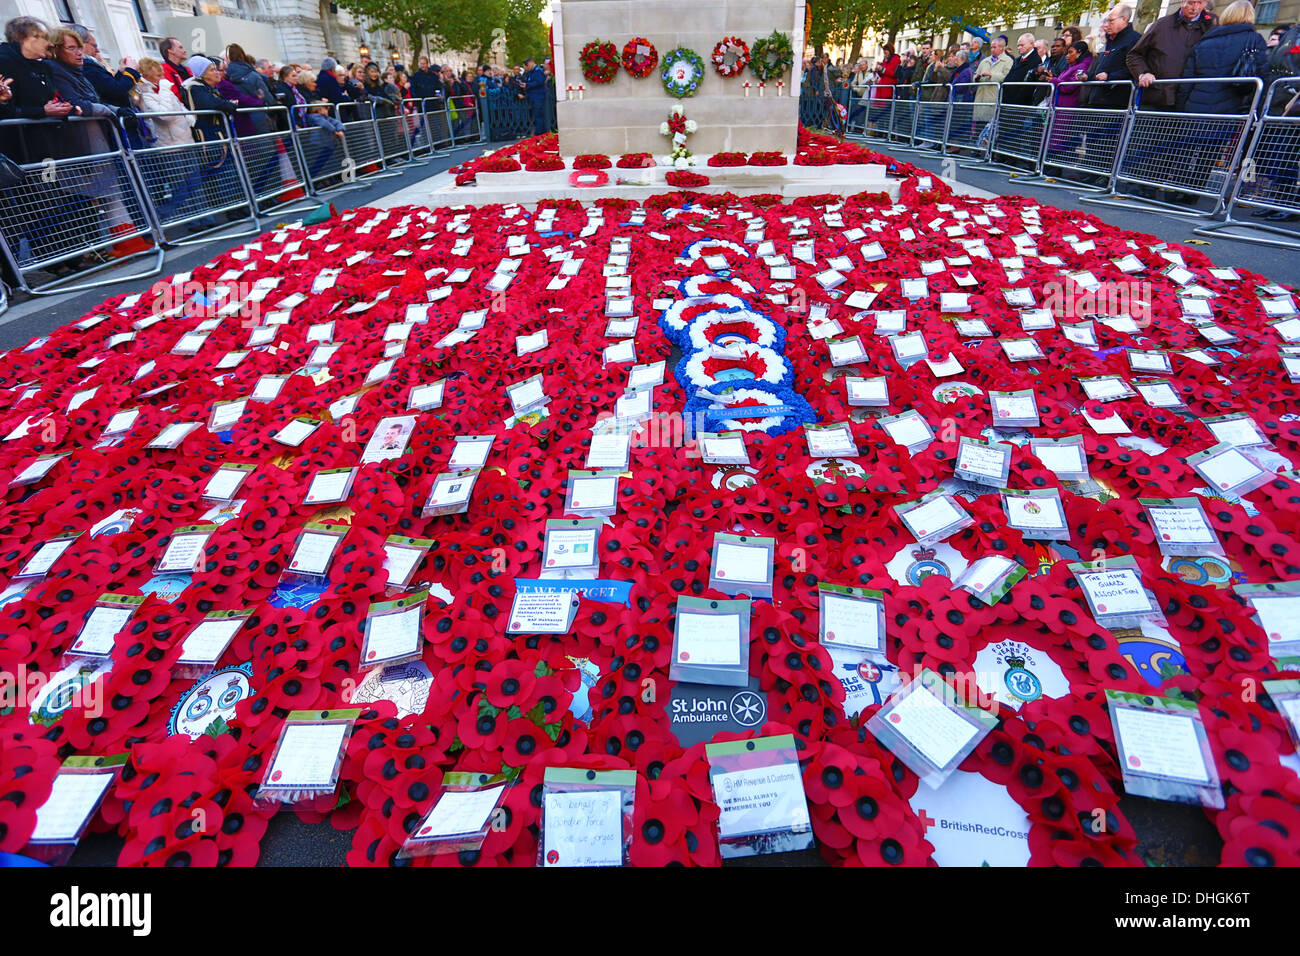 london uk 10th november 2013 red remembrance day poppies and